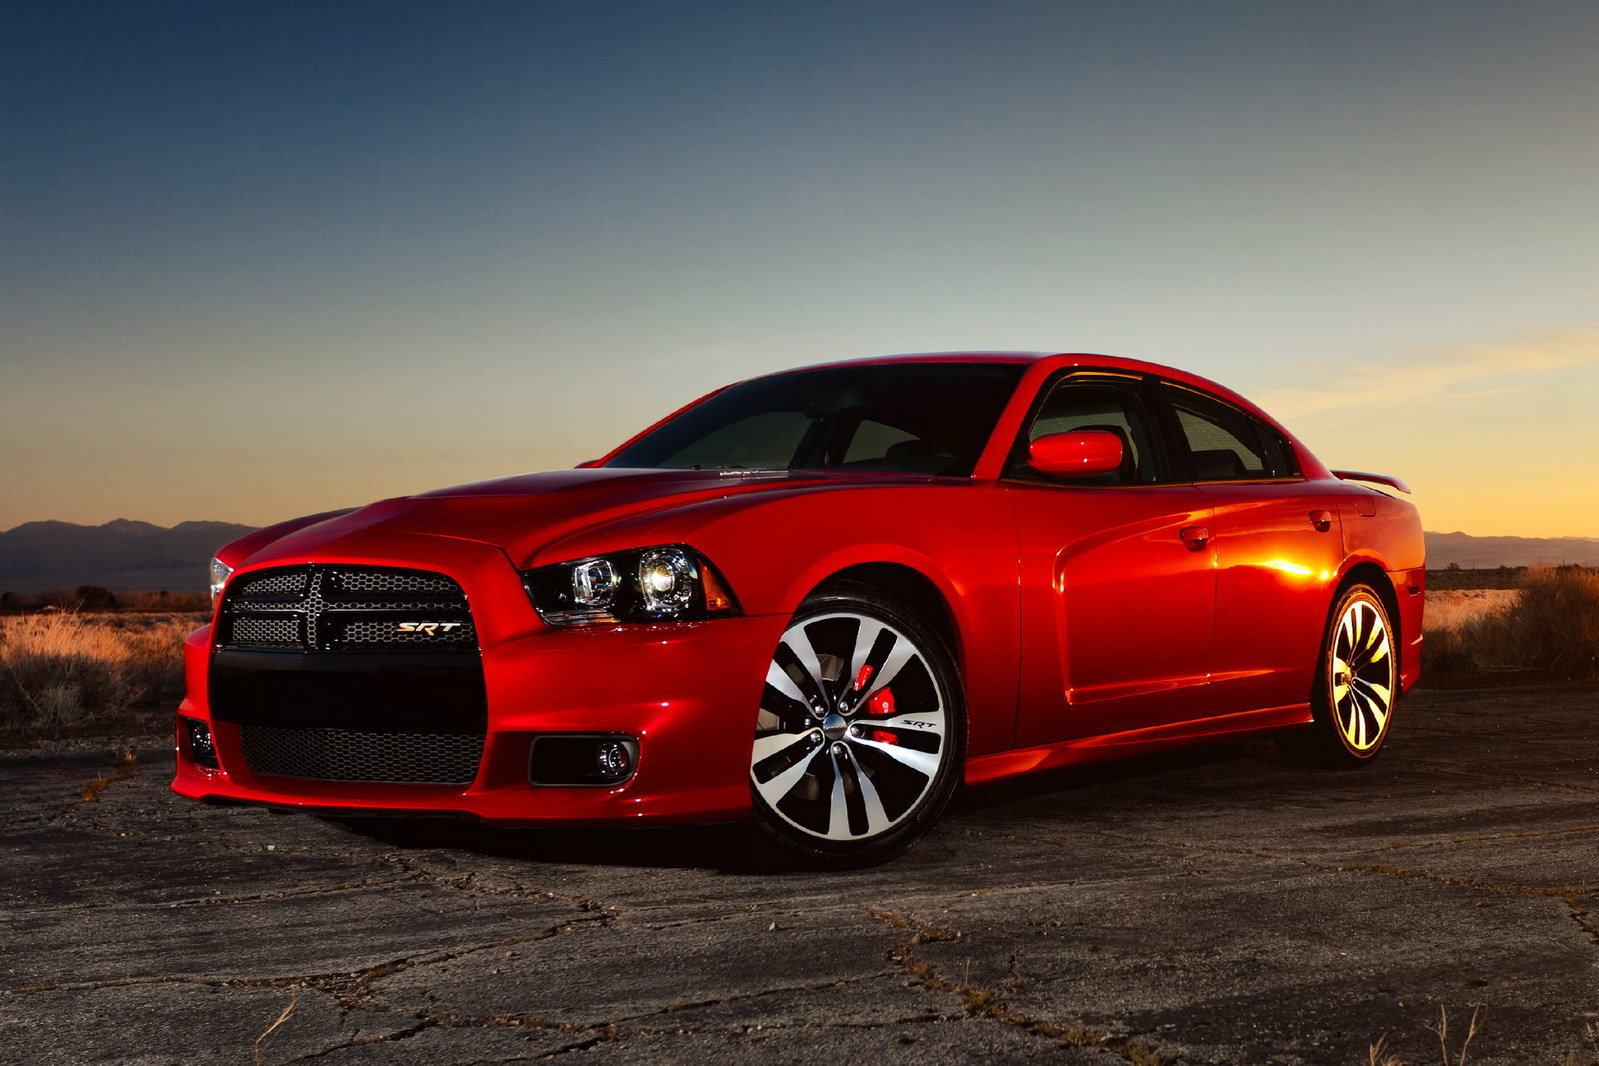 2012 Dodge Charger Red Interior 2012 Dodge Charger Srt8